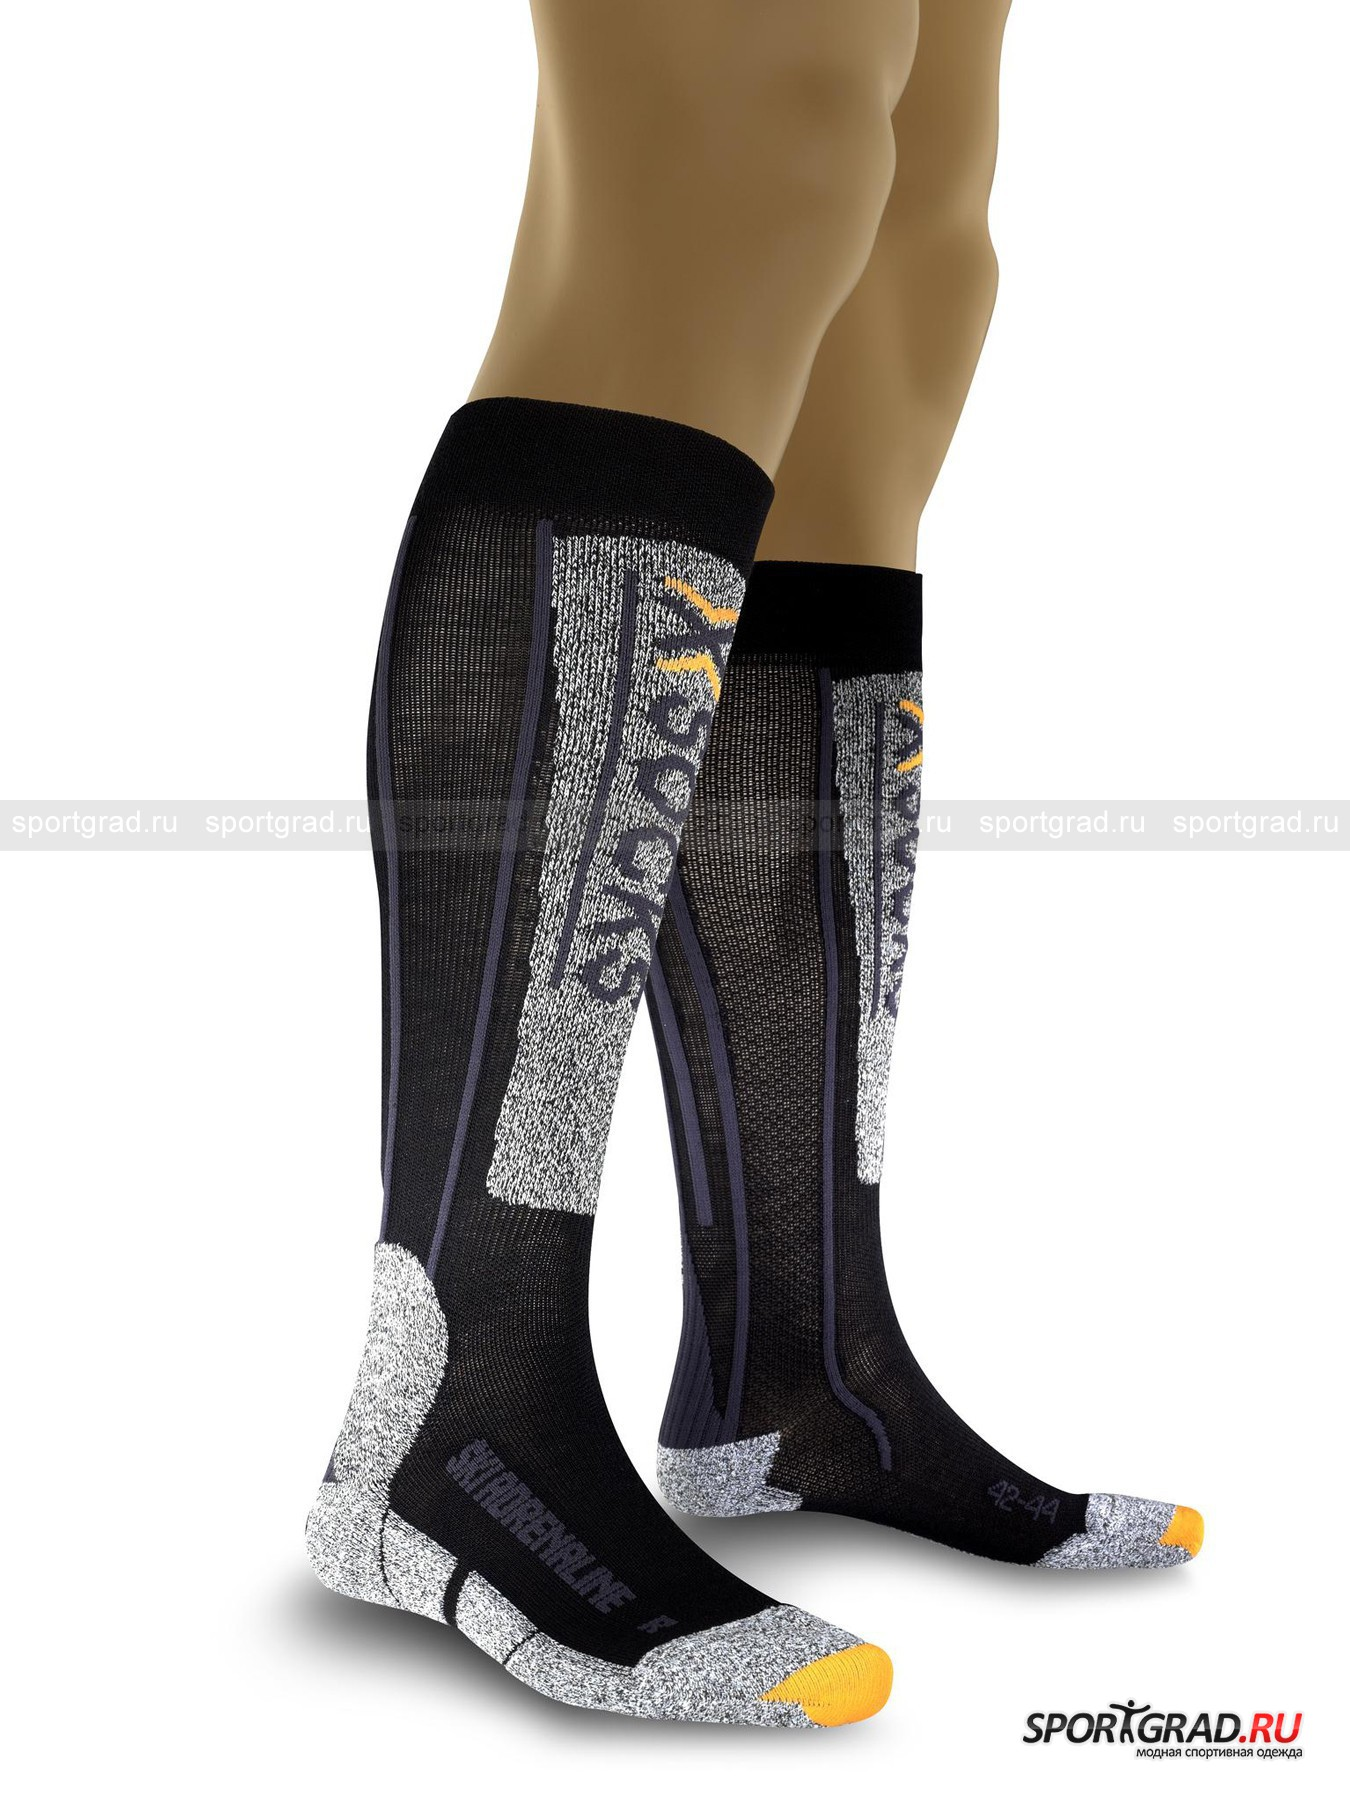 Термоноски унисекс Г/л Ski Adrenaline X-SOCKS от Спортград